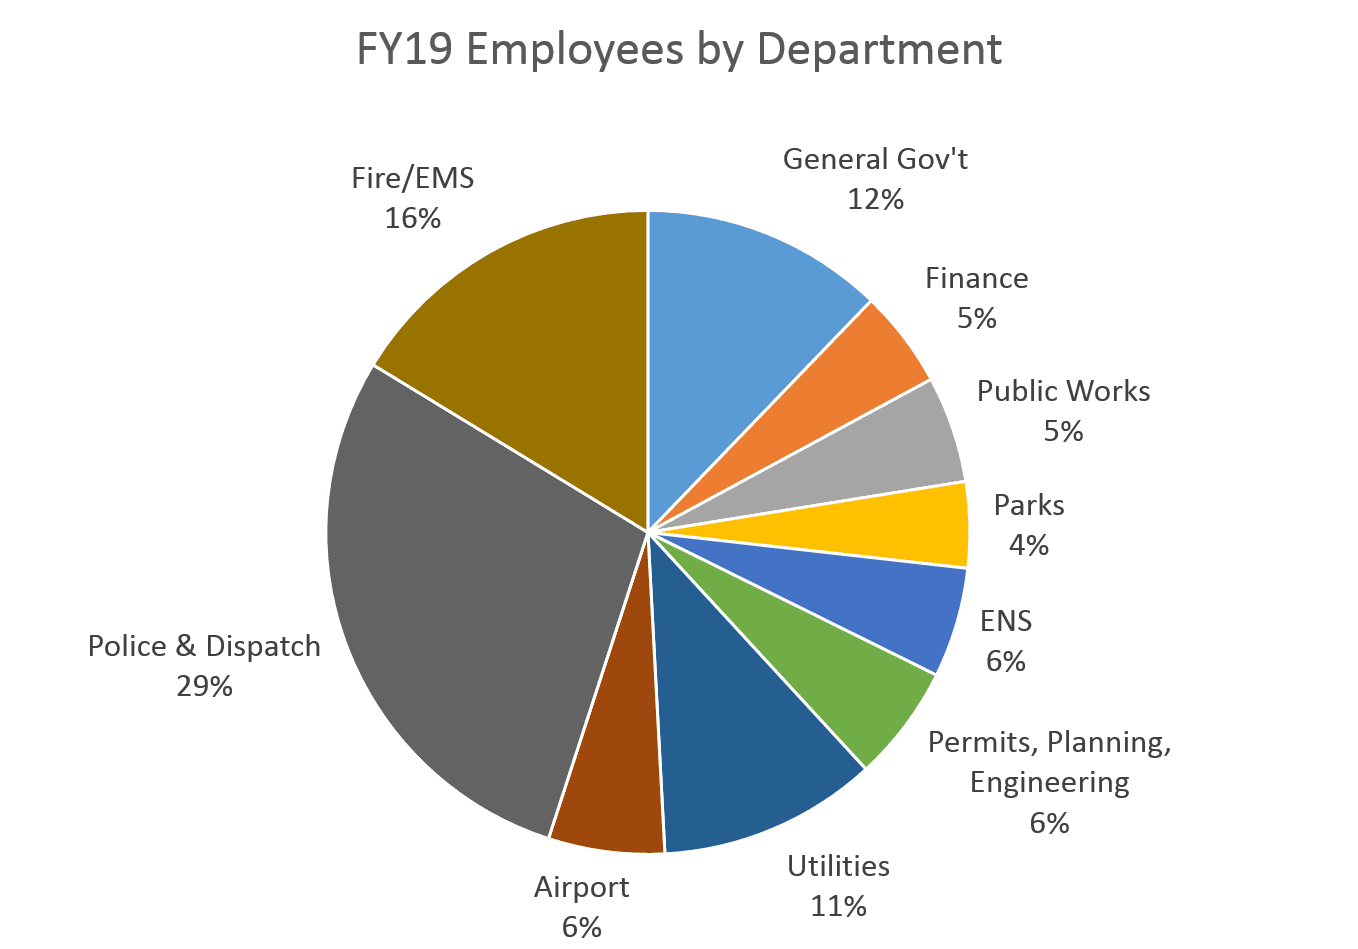 FY19 Employees by Dept